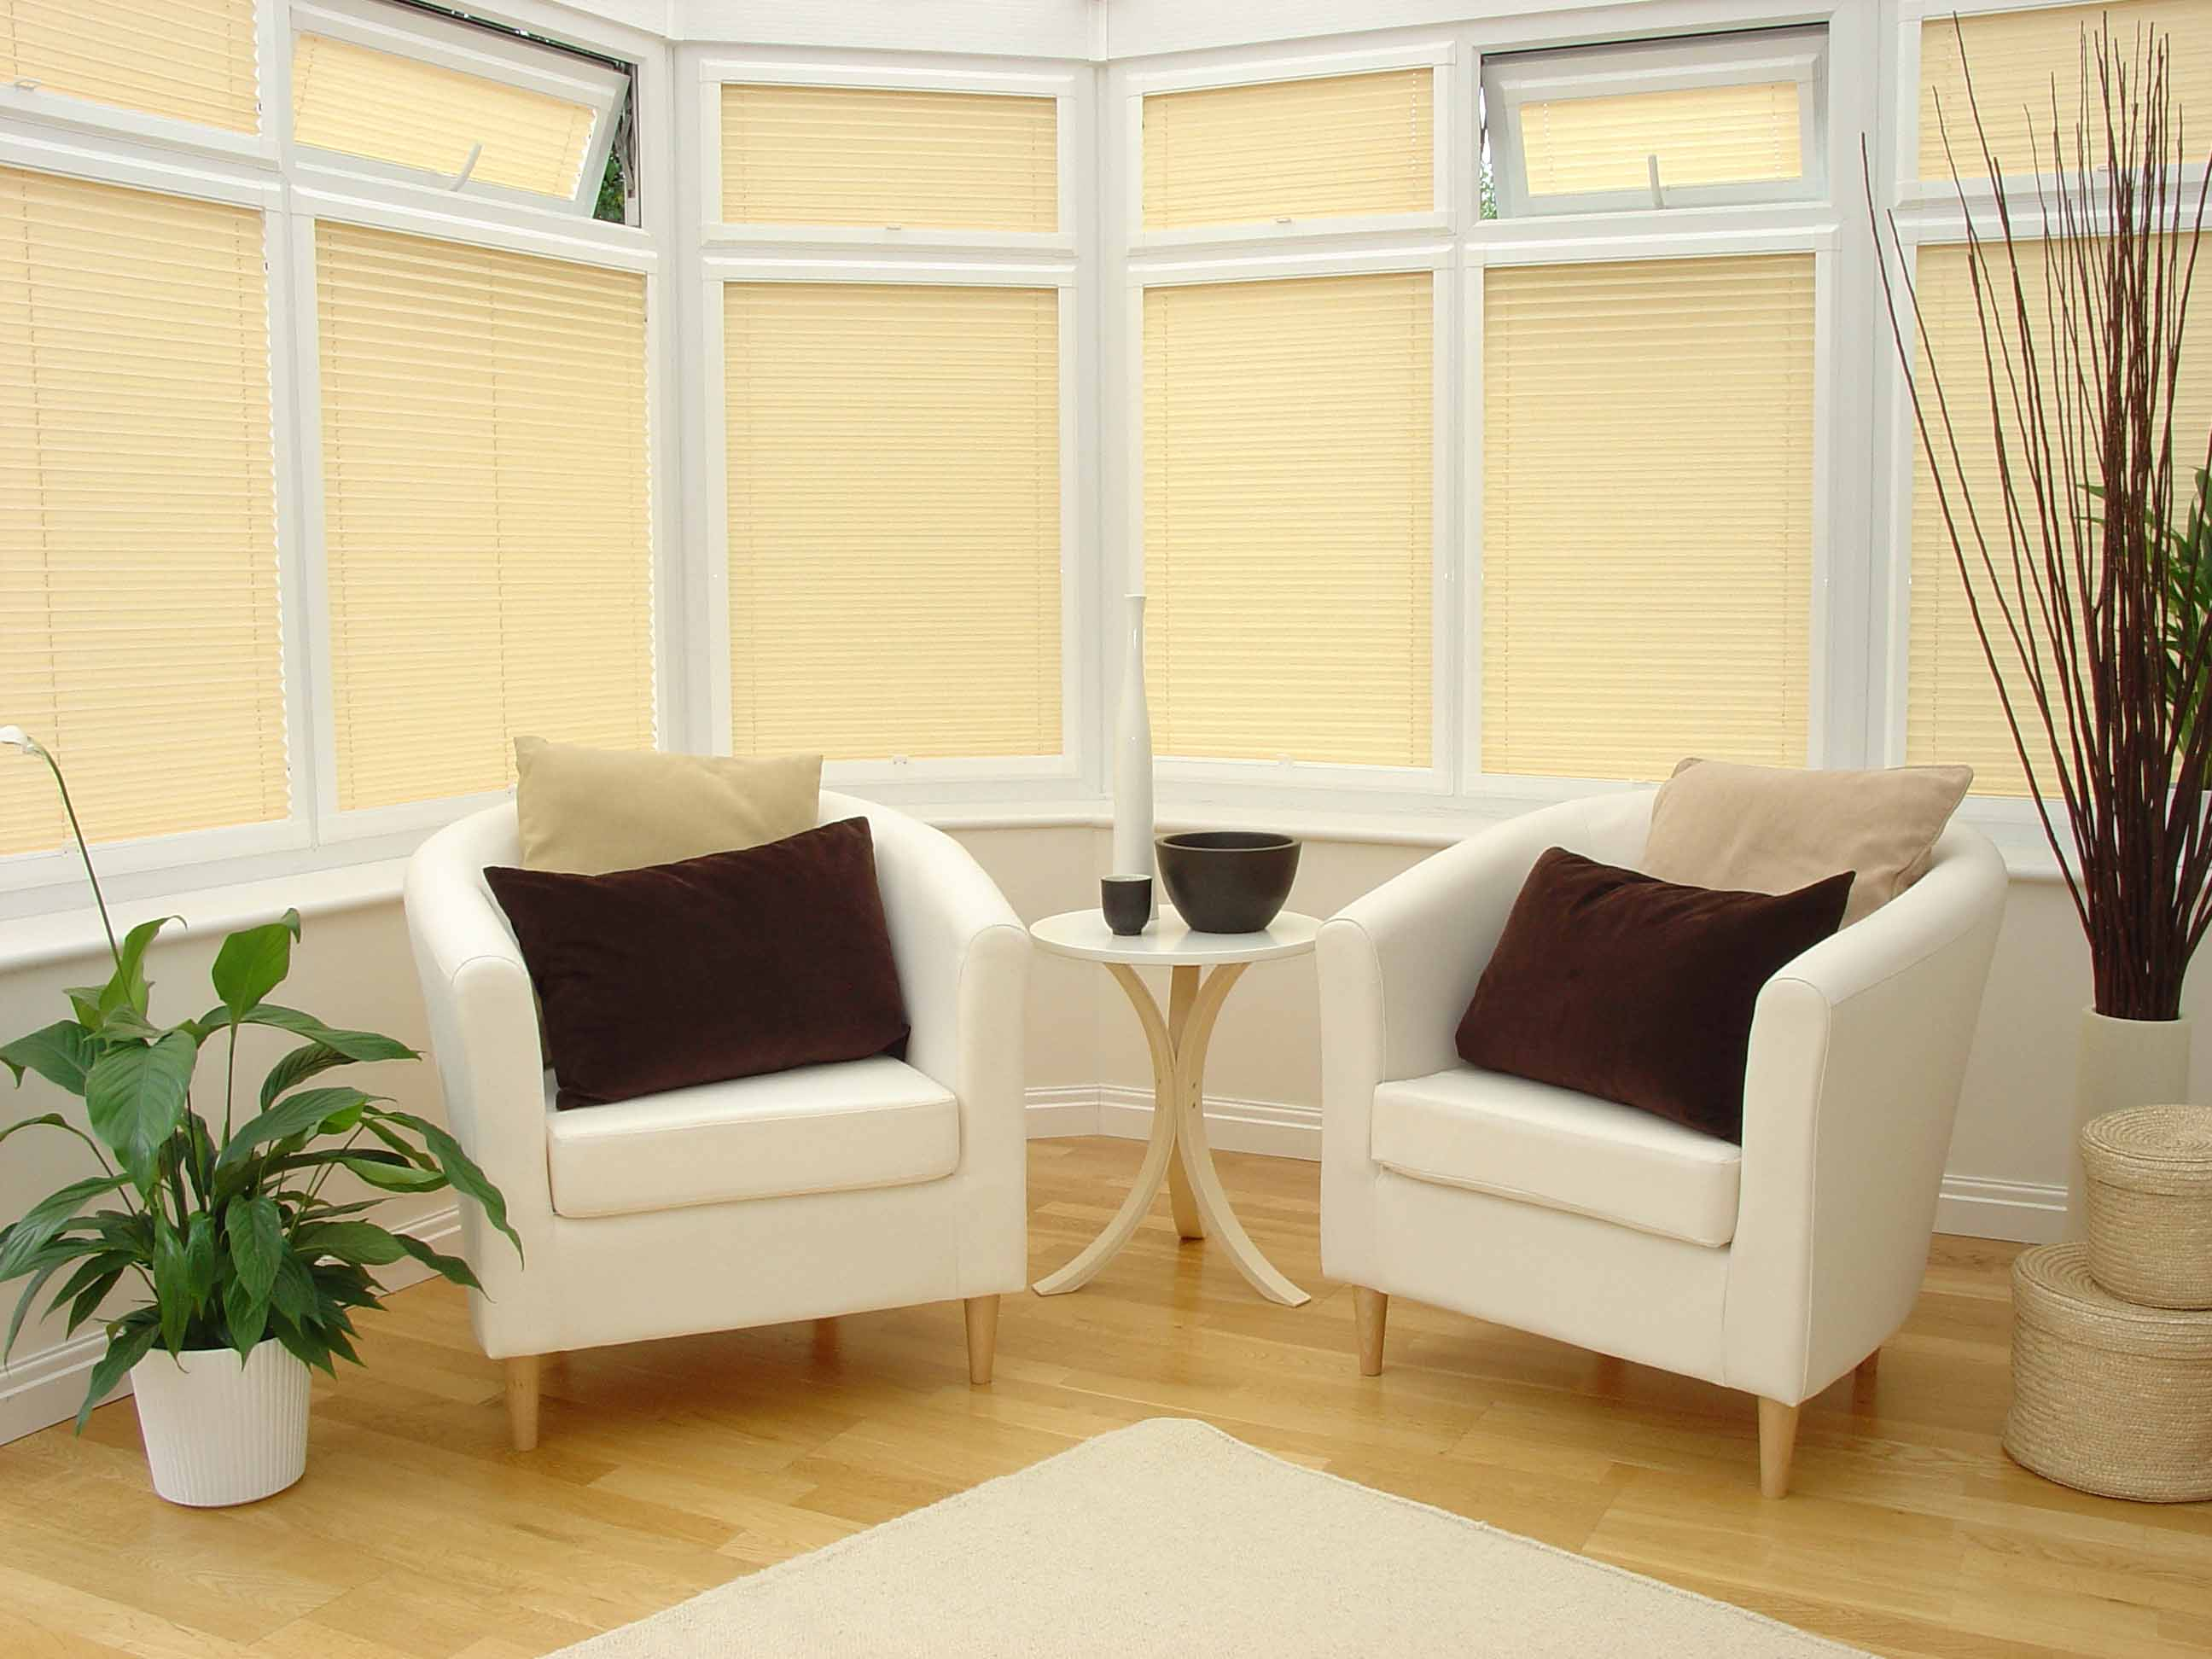 architrave pin geometric work in patterned could blinds stores roman bay covering a blind each attached width above the me bedroom window near of and